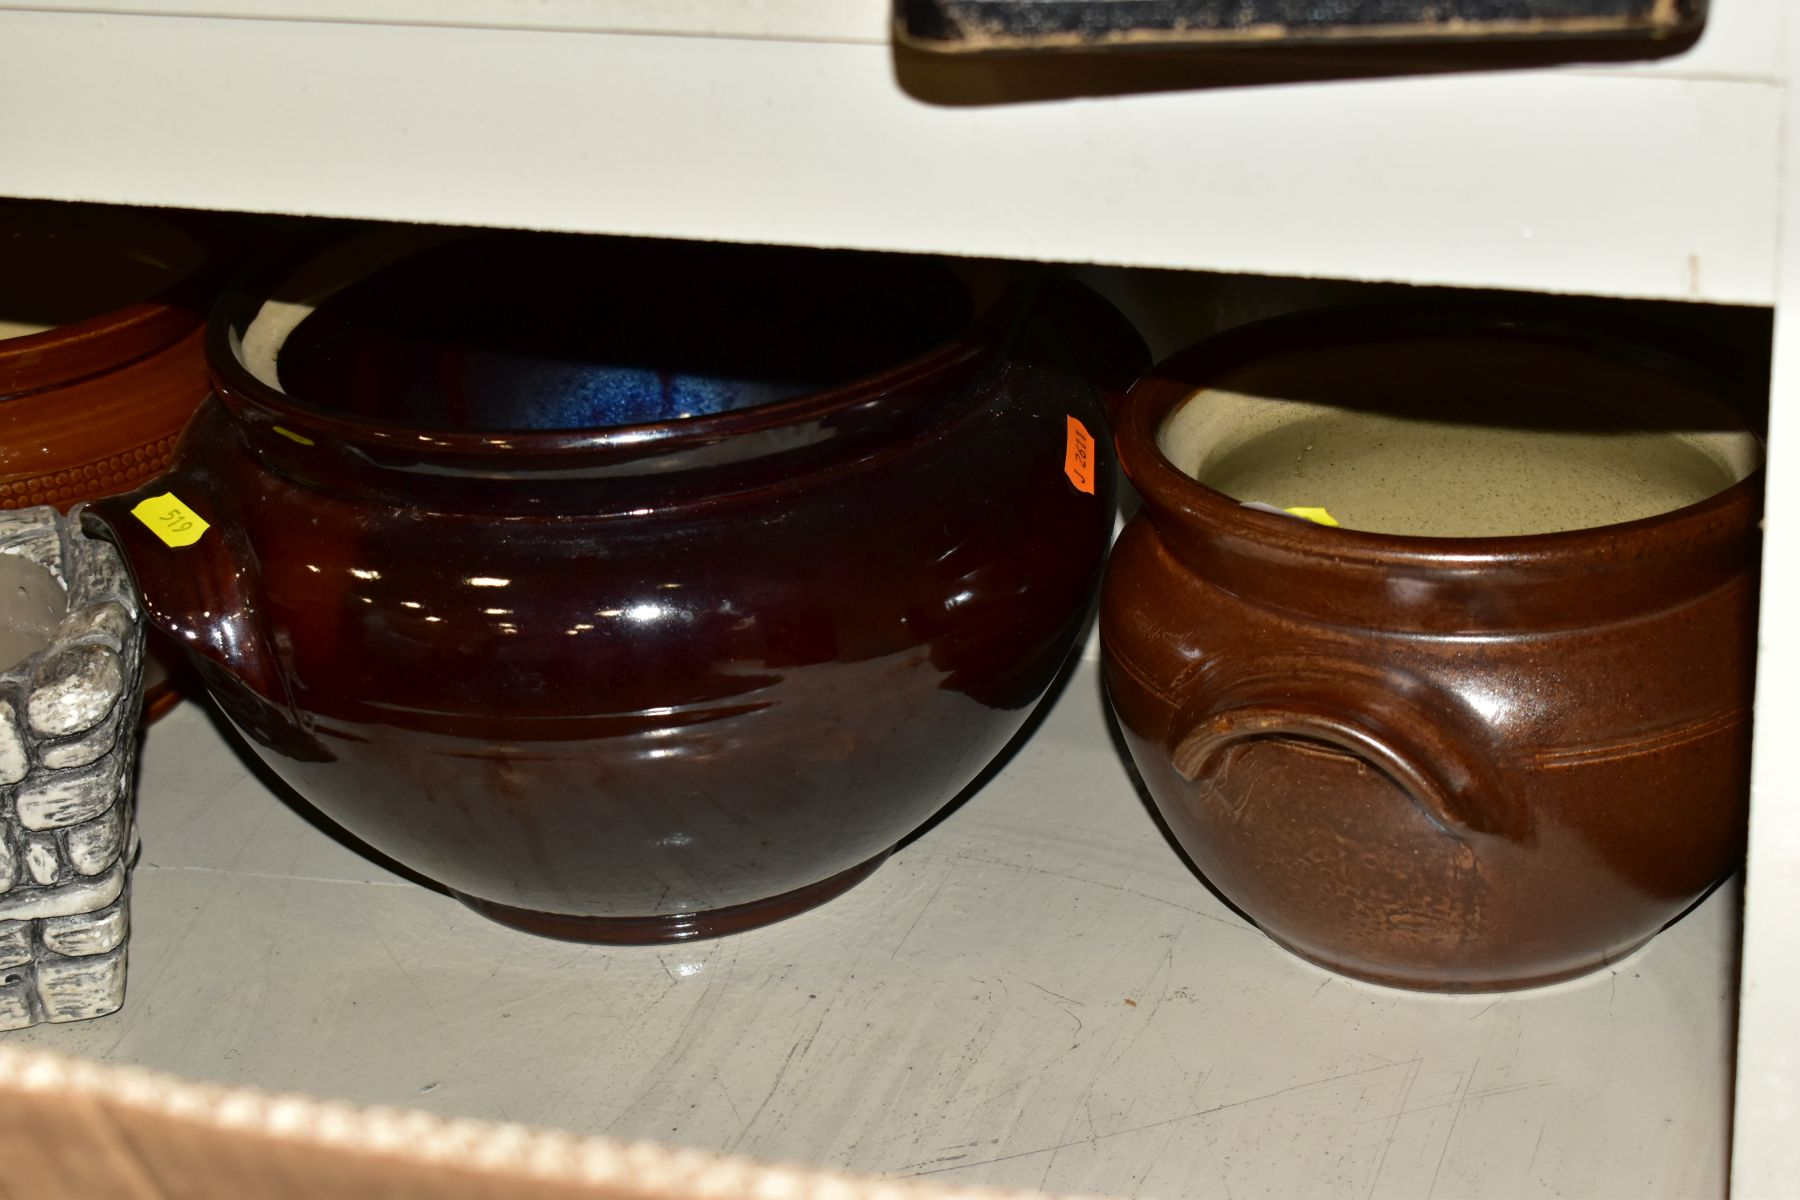 TWO BOXES AND LOOSE STONEWARE etc, including Hillstonia, Studio pottery, stoneware jugs and flagons, - Image 5 of 8